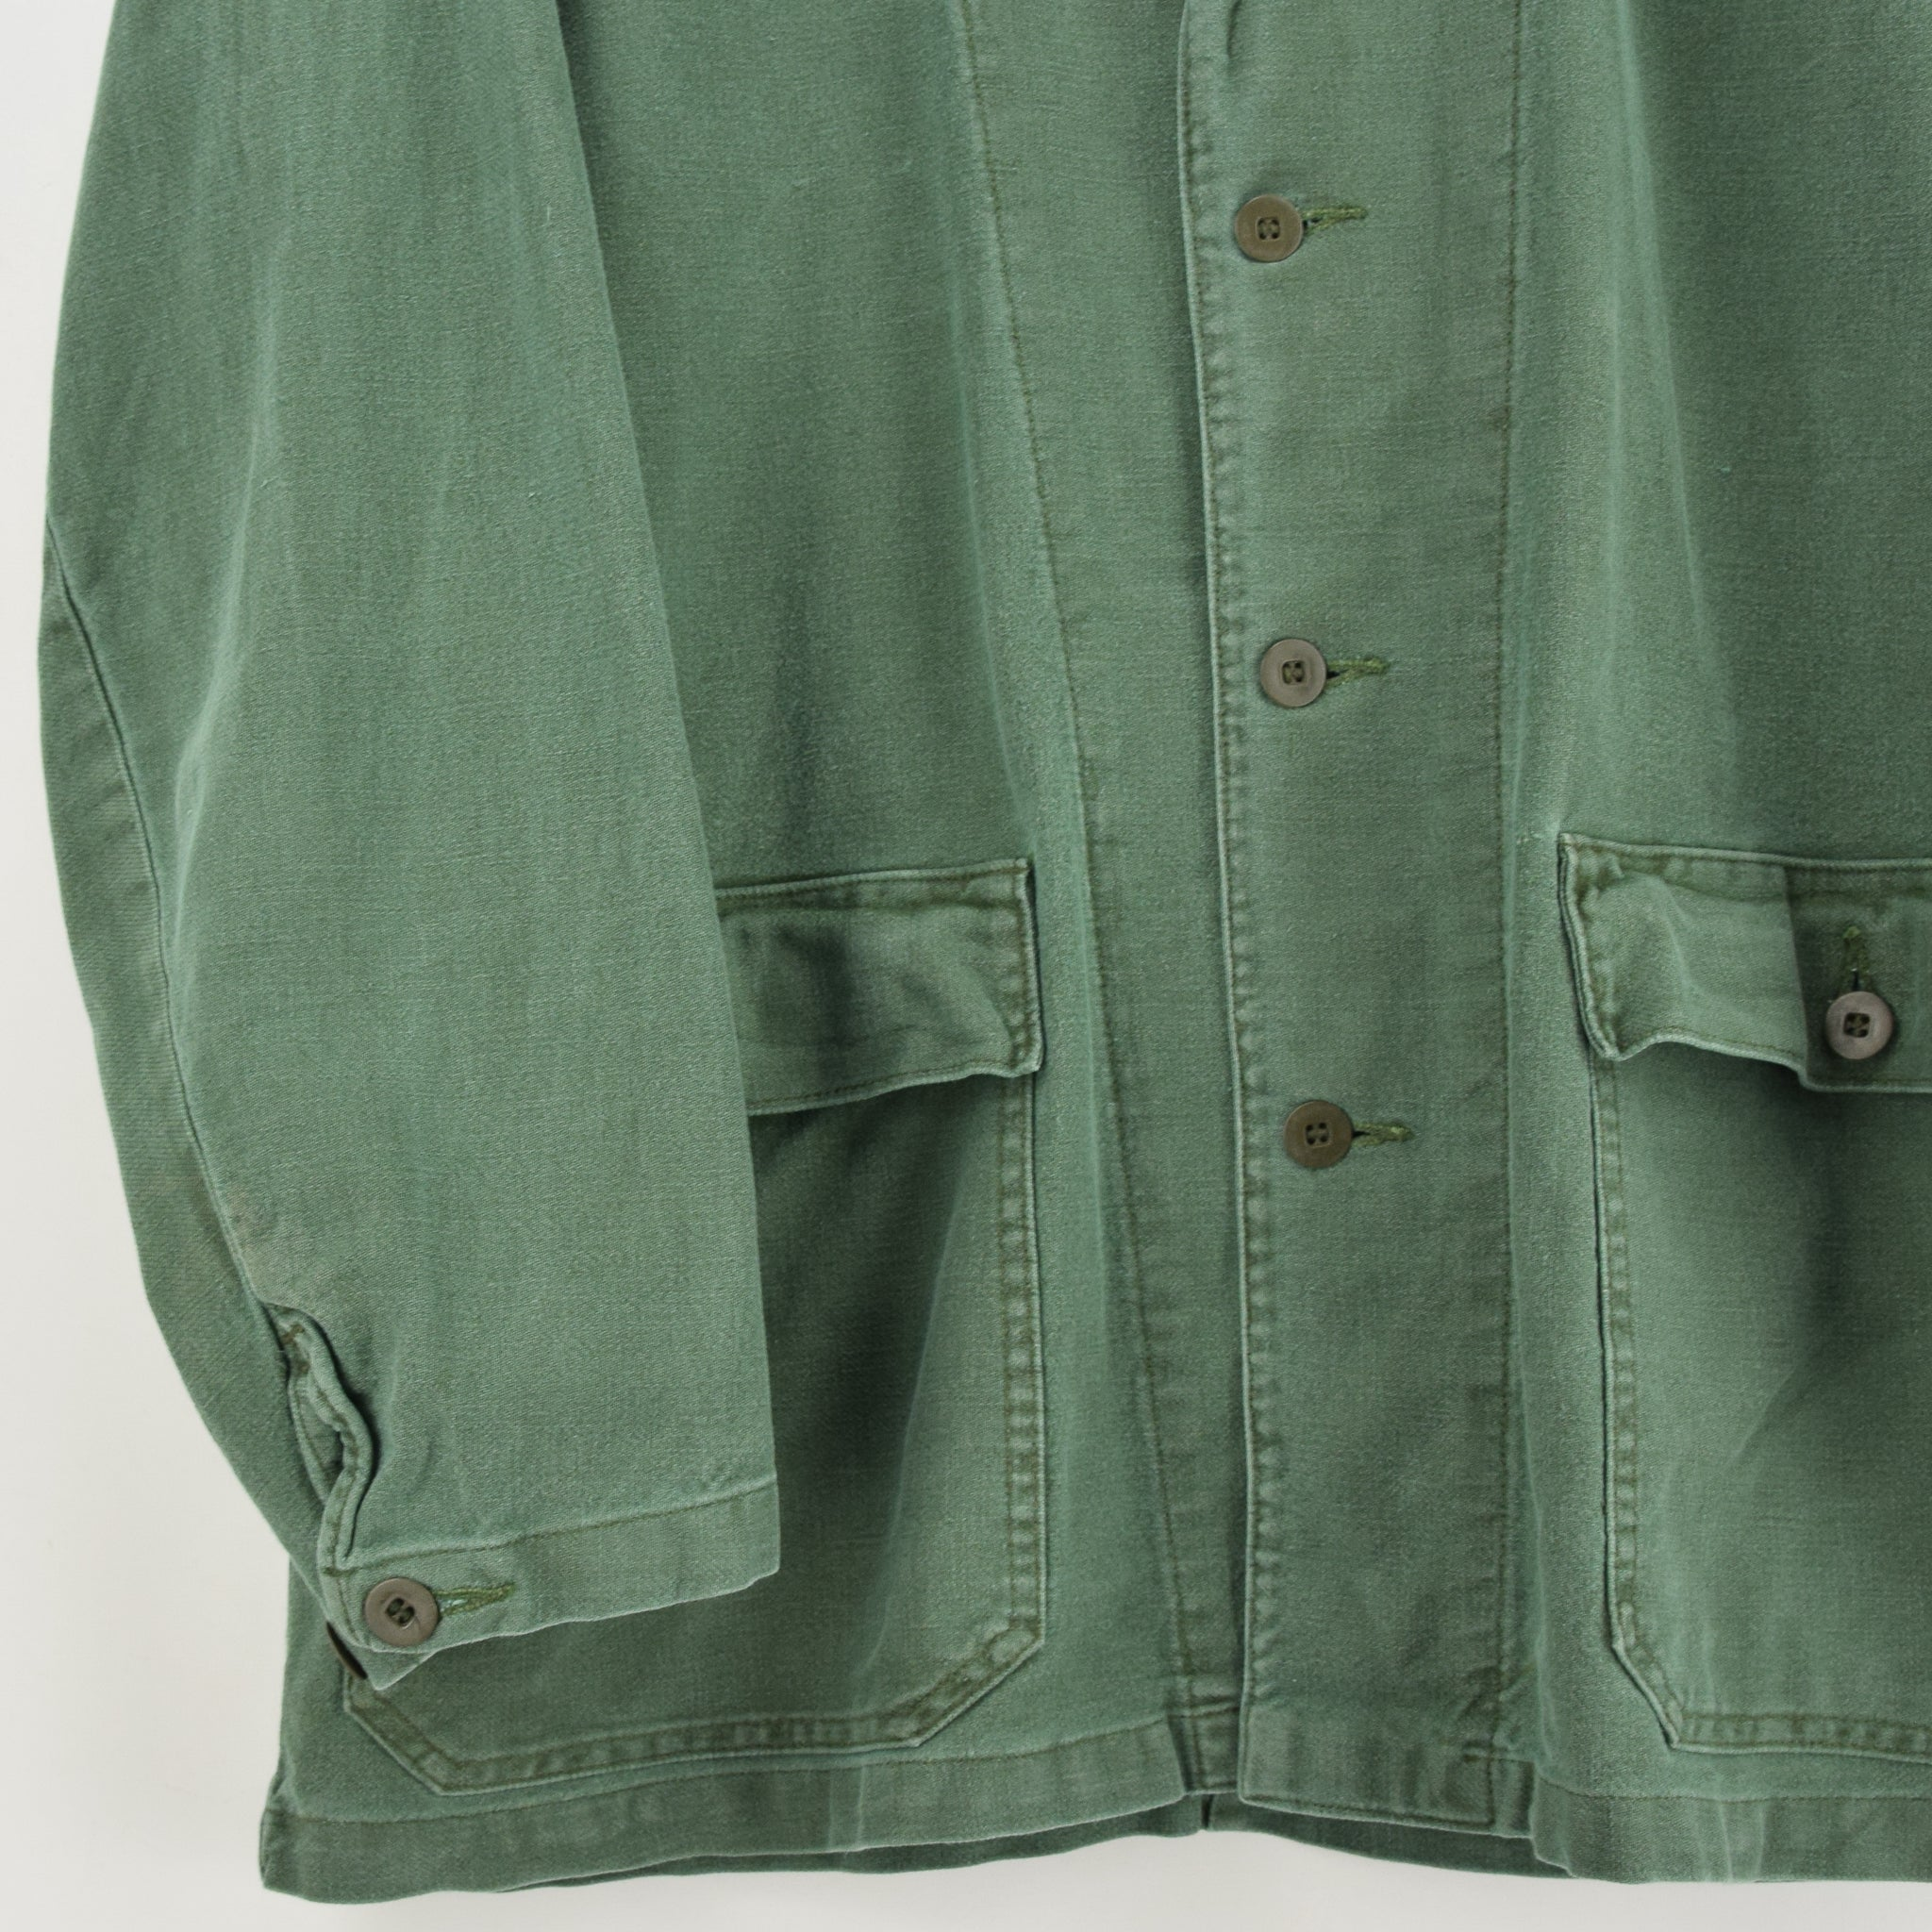 Vintage Swedish Worker Style Green Distressed Military Cotton Field Jacket M front hem